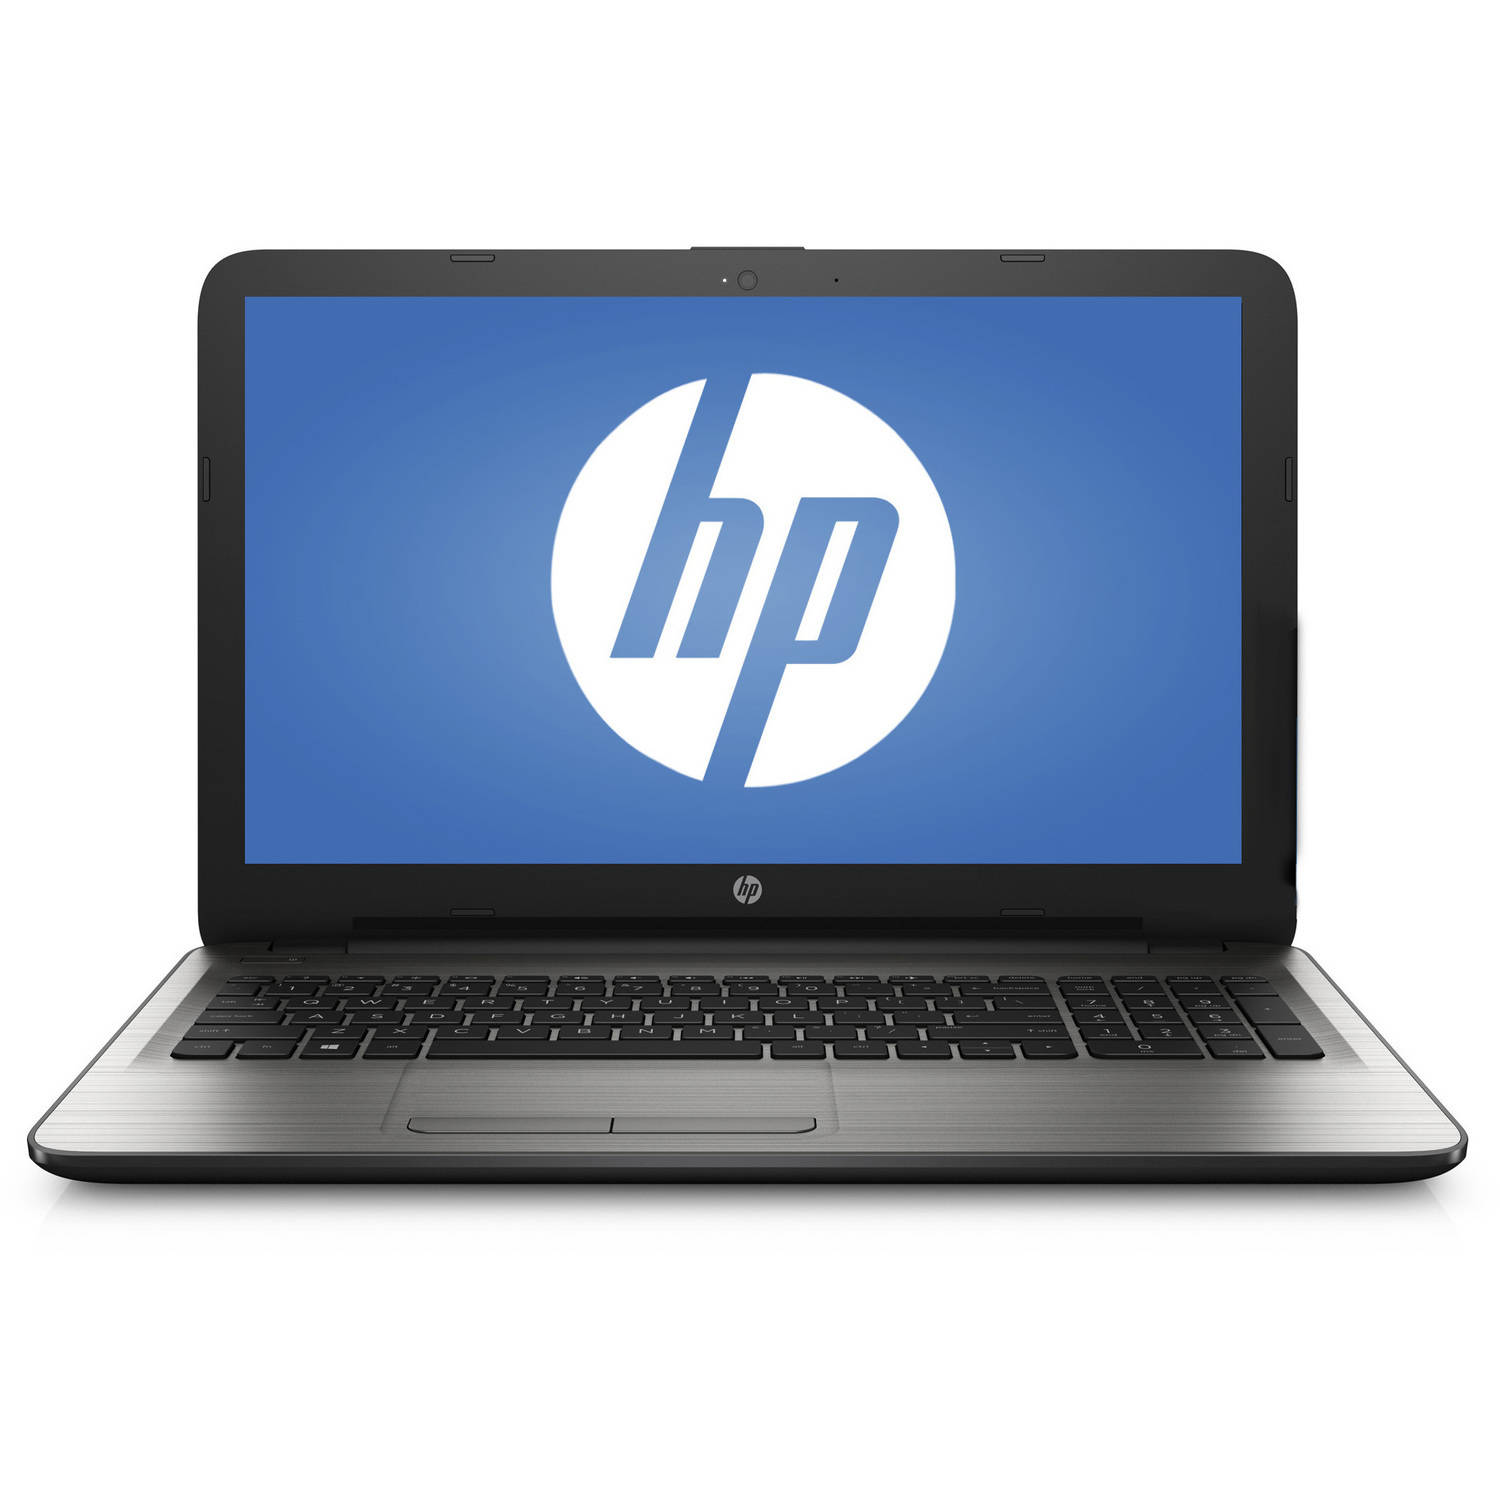 "HP ENVY 15-ba040nr 15.6"" Laptop, touch screen, Windows 10 Home, AMD A10-9600P APU Processor, 8GB RAM, 1TB Hard Drive"